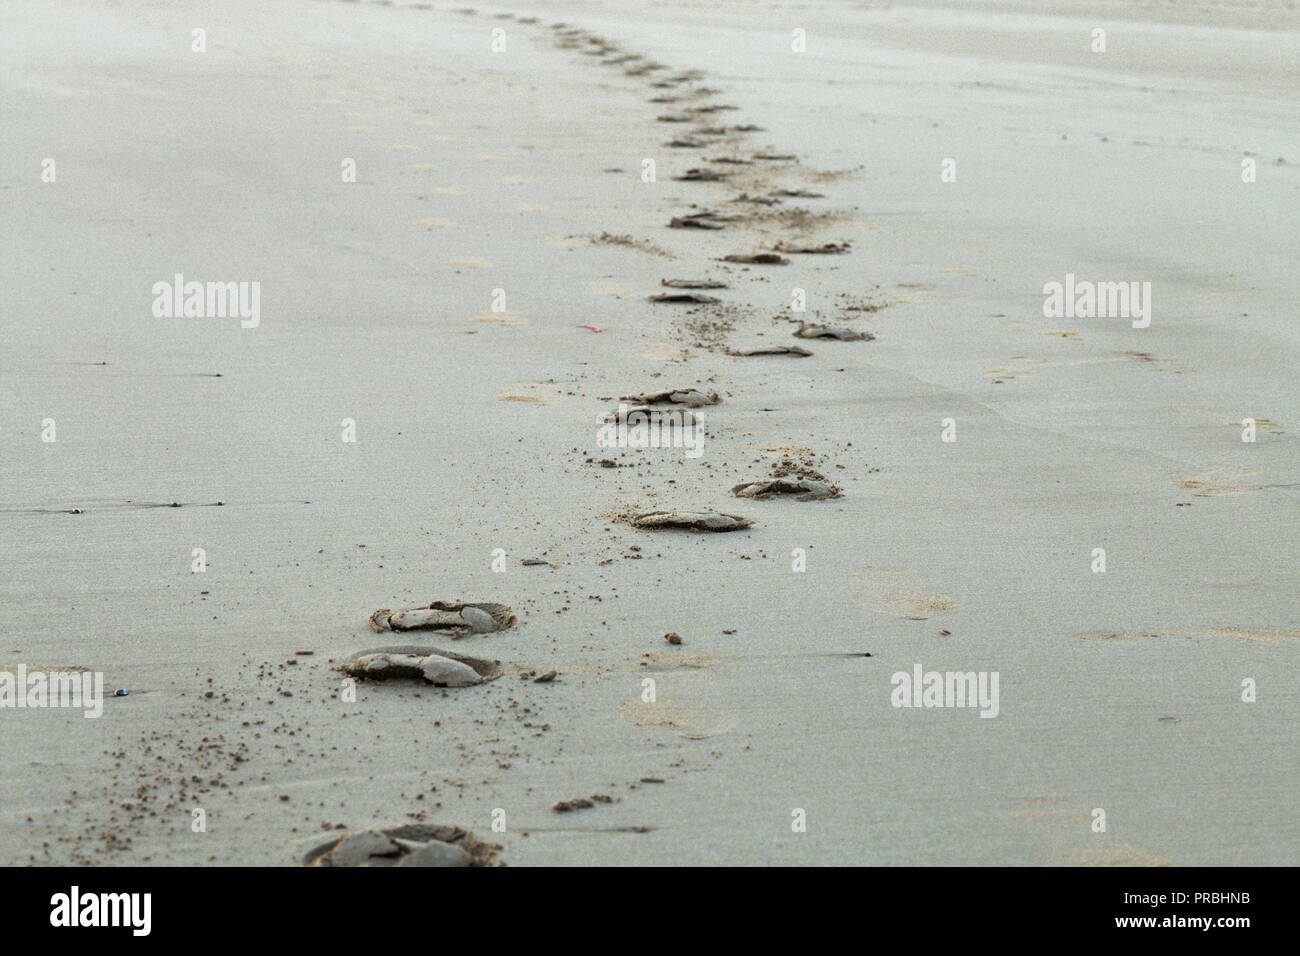 Horse hoof prints on wet smooth beach sand in Pembrokeshire, Wales, UK - Stock Image